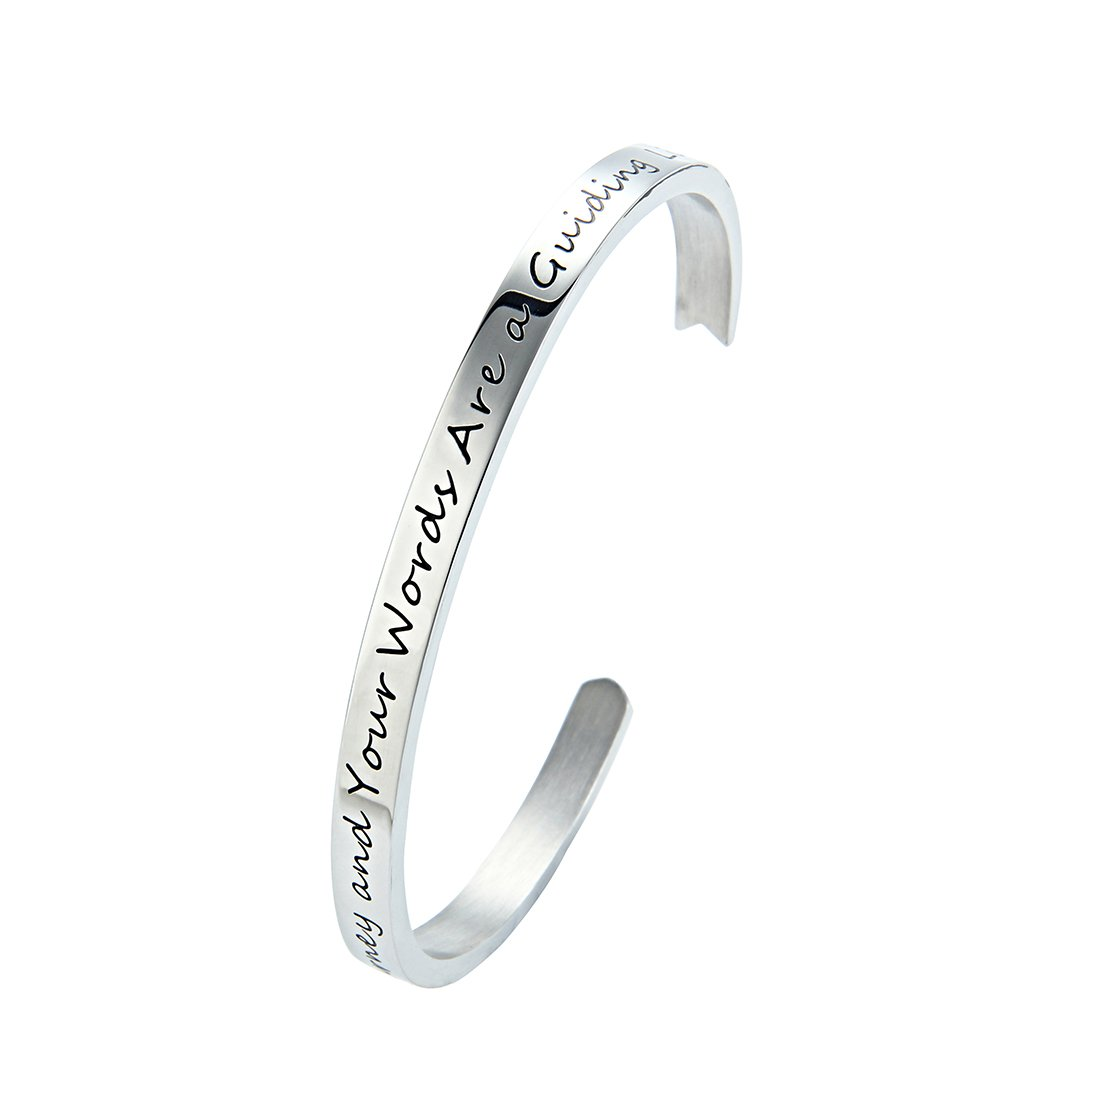 Meibai Teachers Bracelet Stainless Steel Arrow Cuff Bangle Engraved Words for Teacher Education Gift (Silver-Life Is a Journey and Your Words Are a Guiding Light)